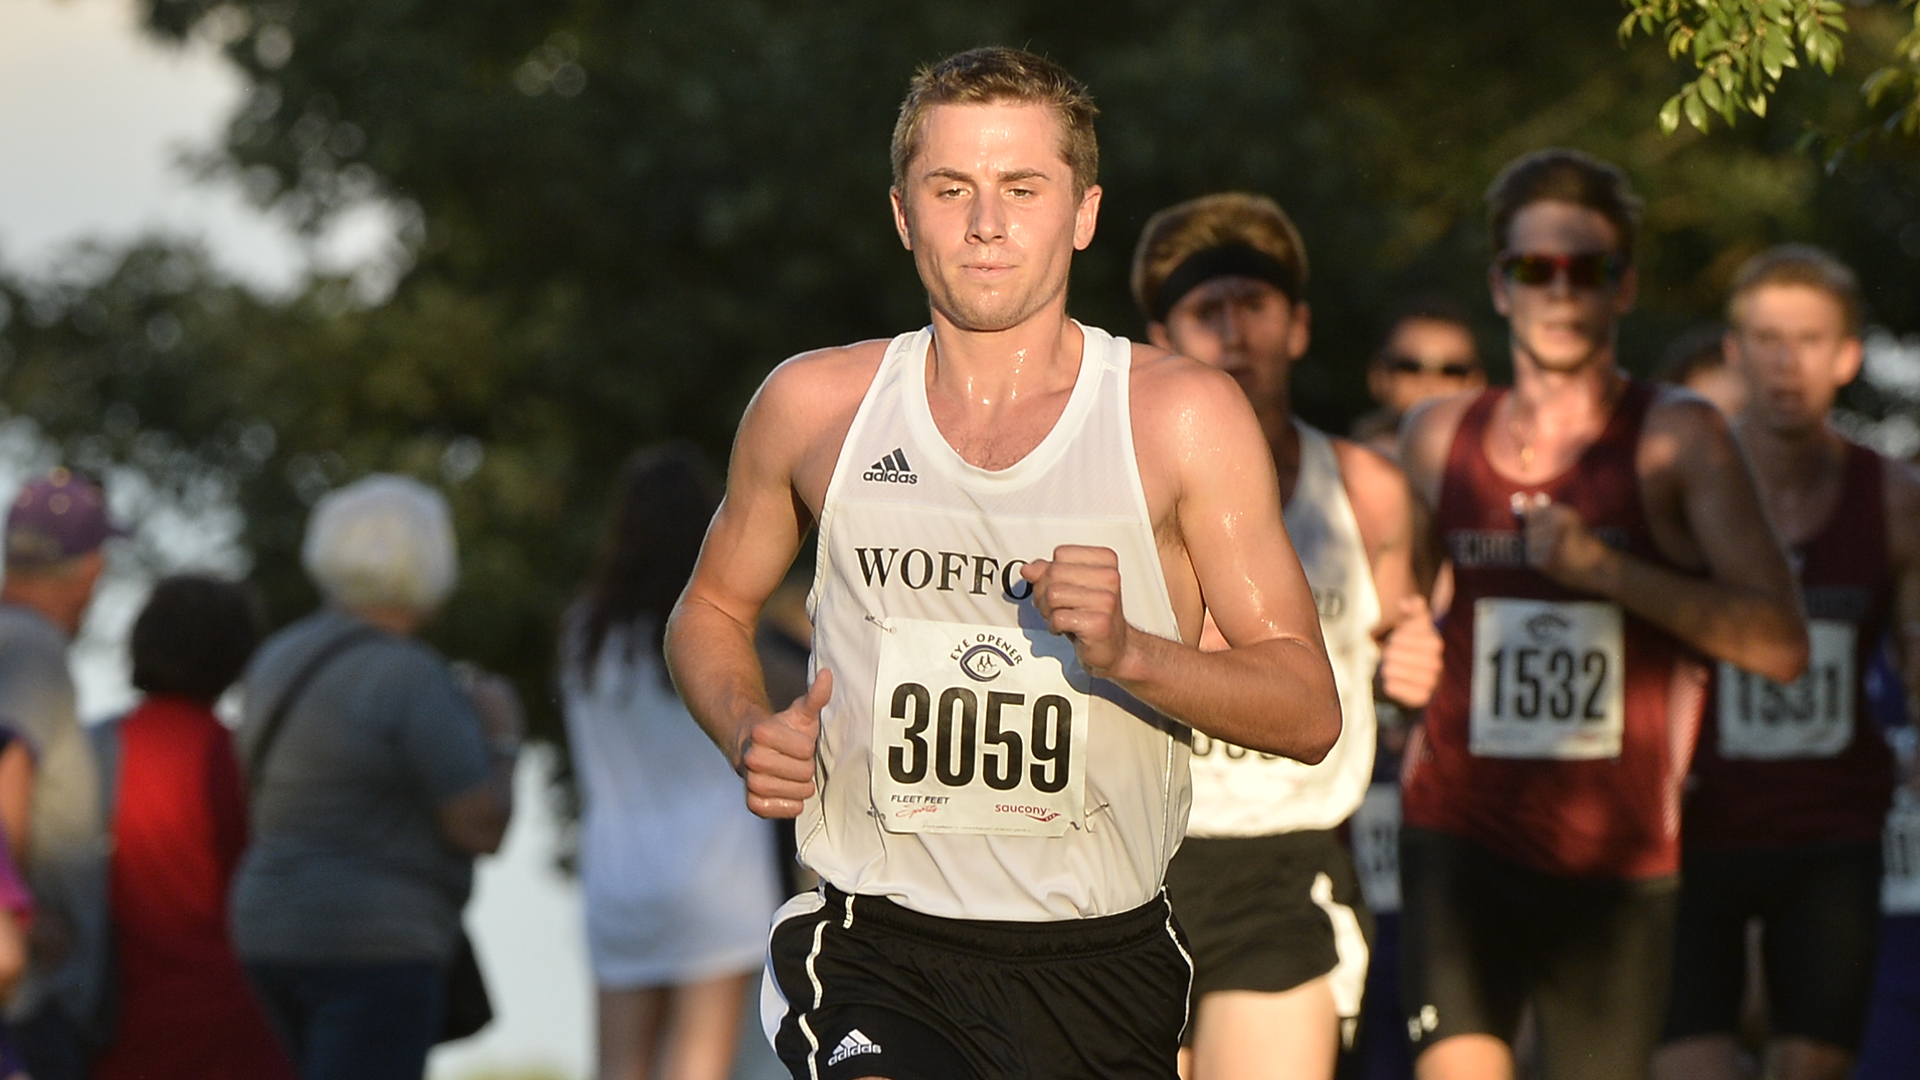 Jack Zemp - Men's Cross Country - Wofford College Athletics